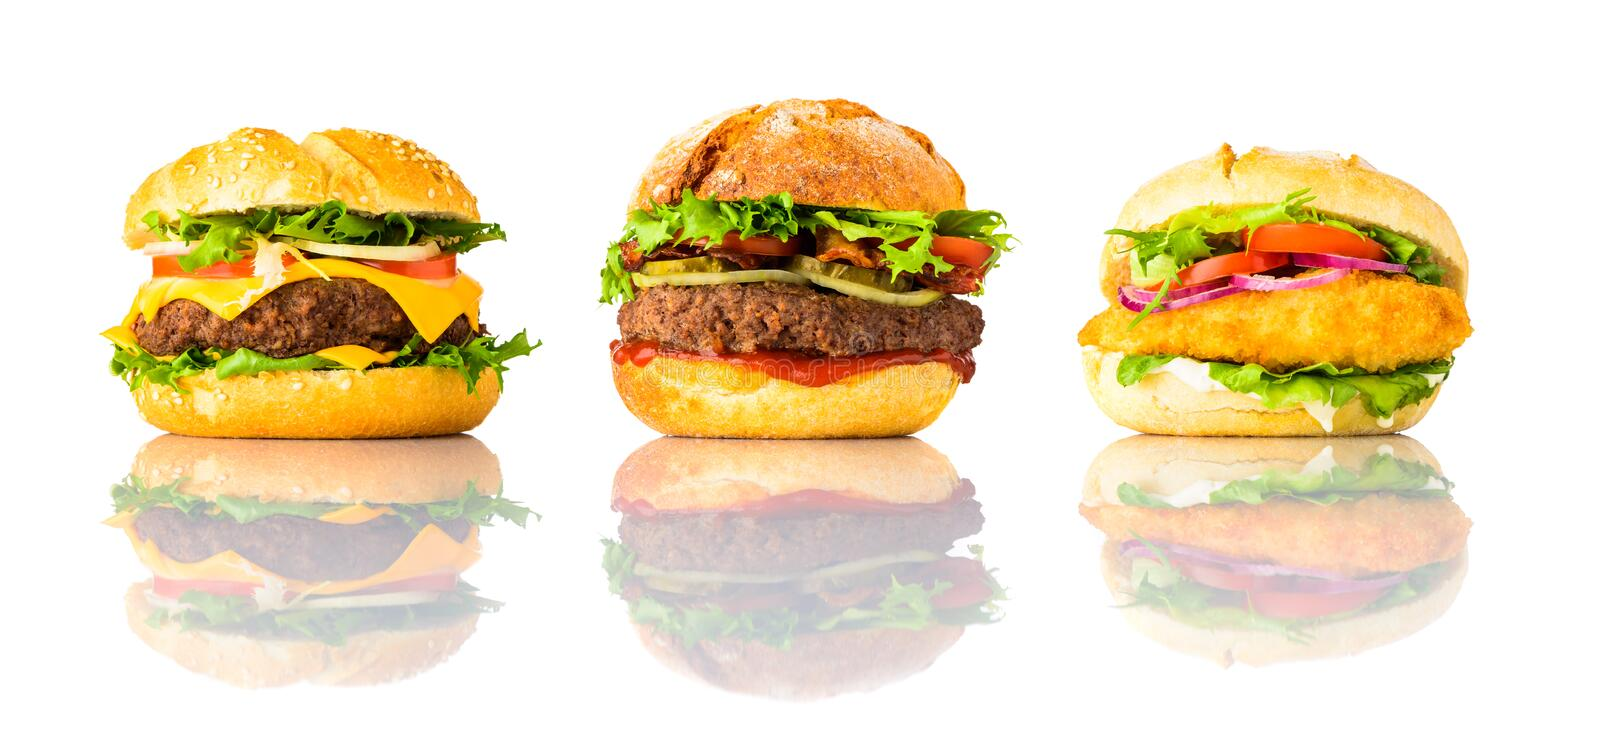 Hamburger, Cheeseburger and Chicken burger on White Background stock images